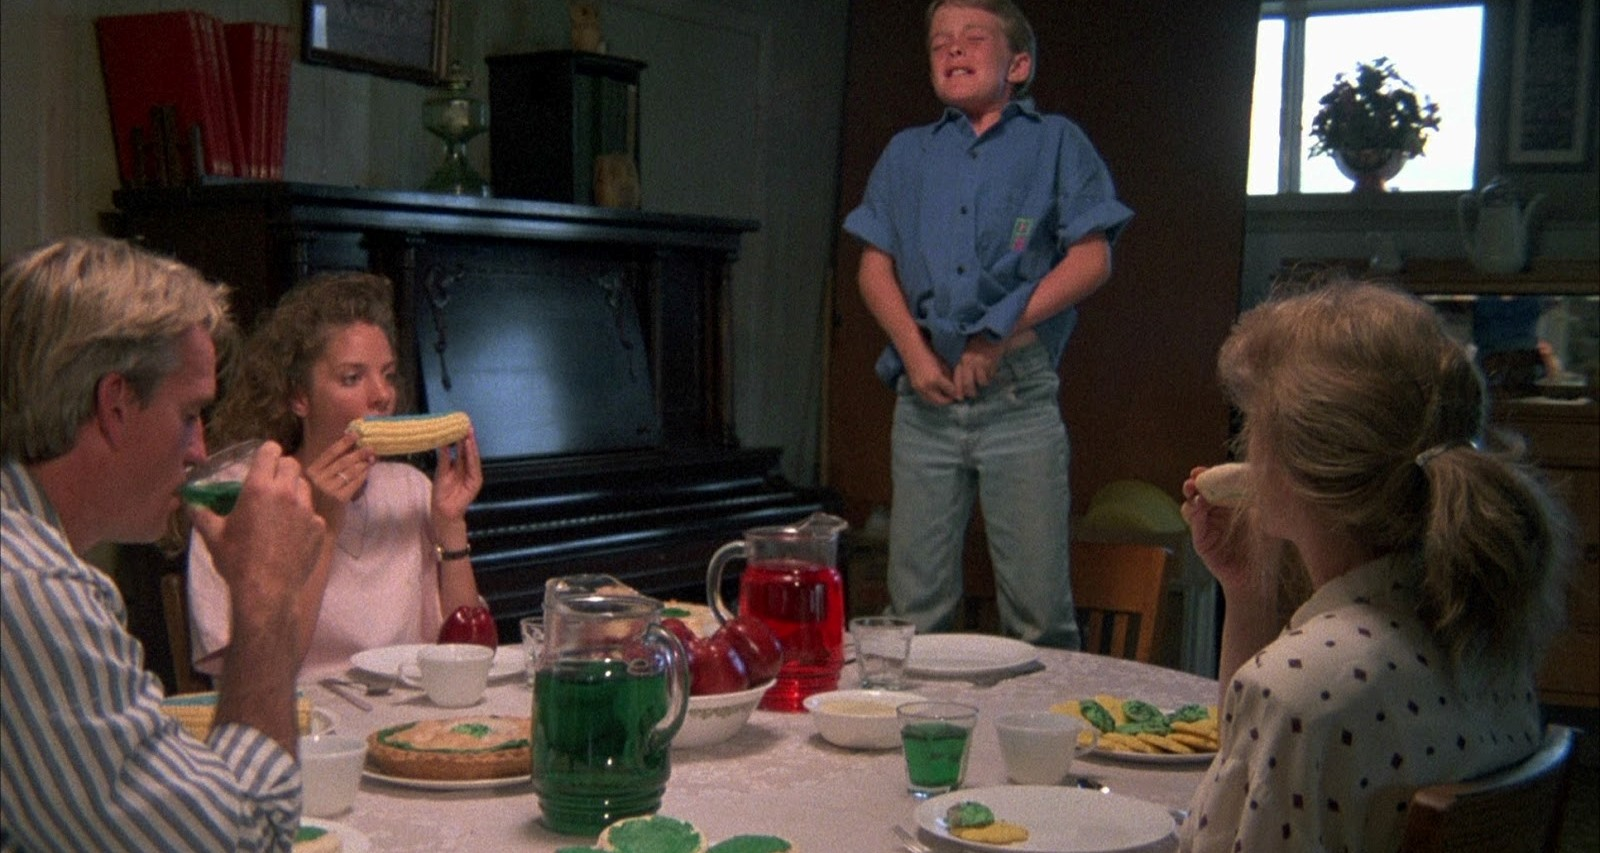 Michael Stephenson stands up to urinate on the table as father George Hardy, daughter Connie McFarland and mother Margo Prey sit down to eat dinner in Troll 2 (1990)